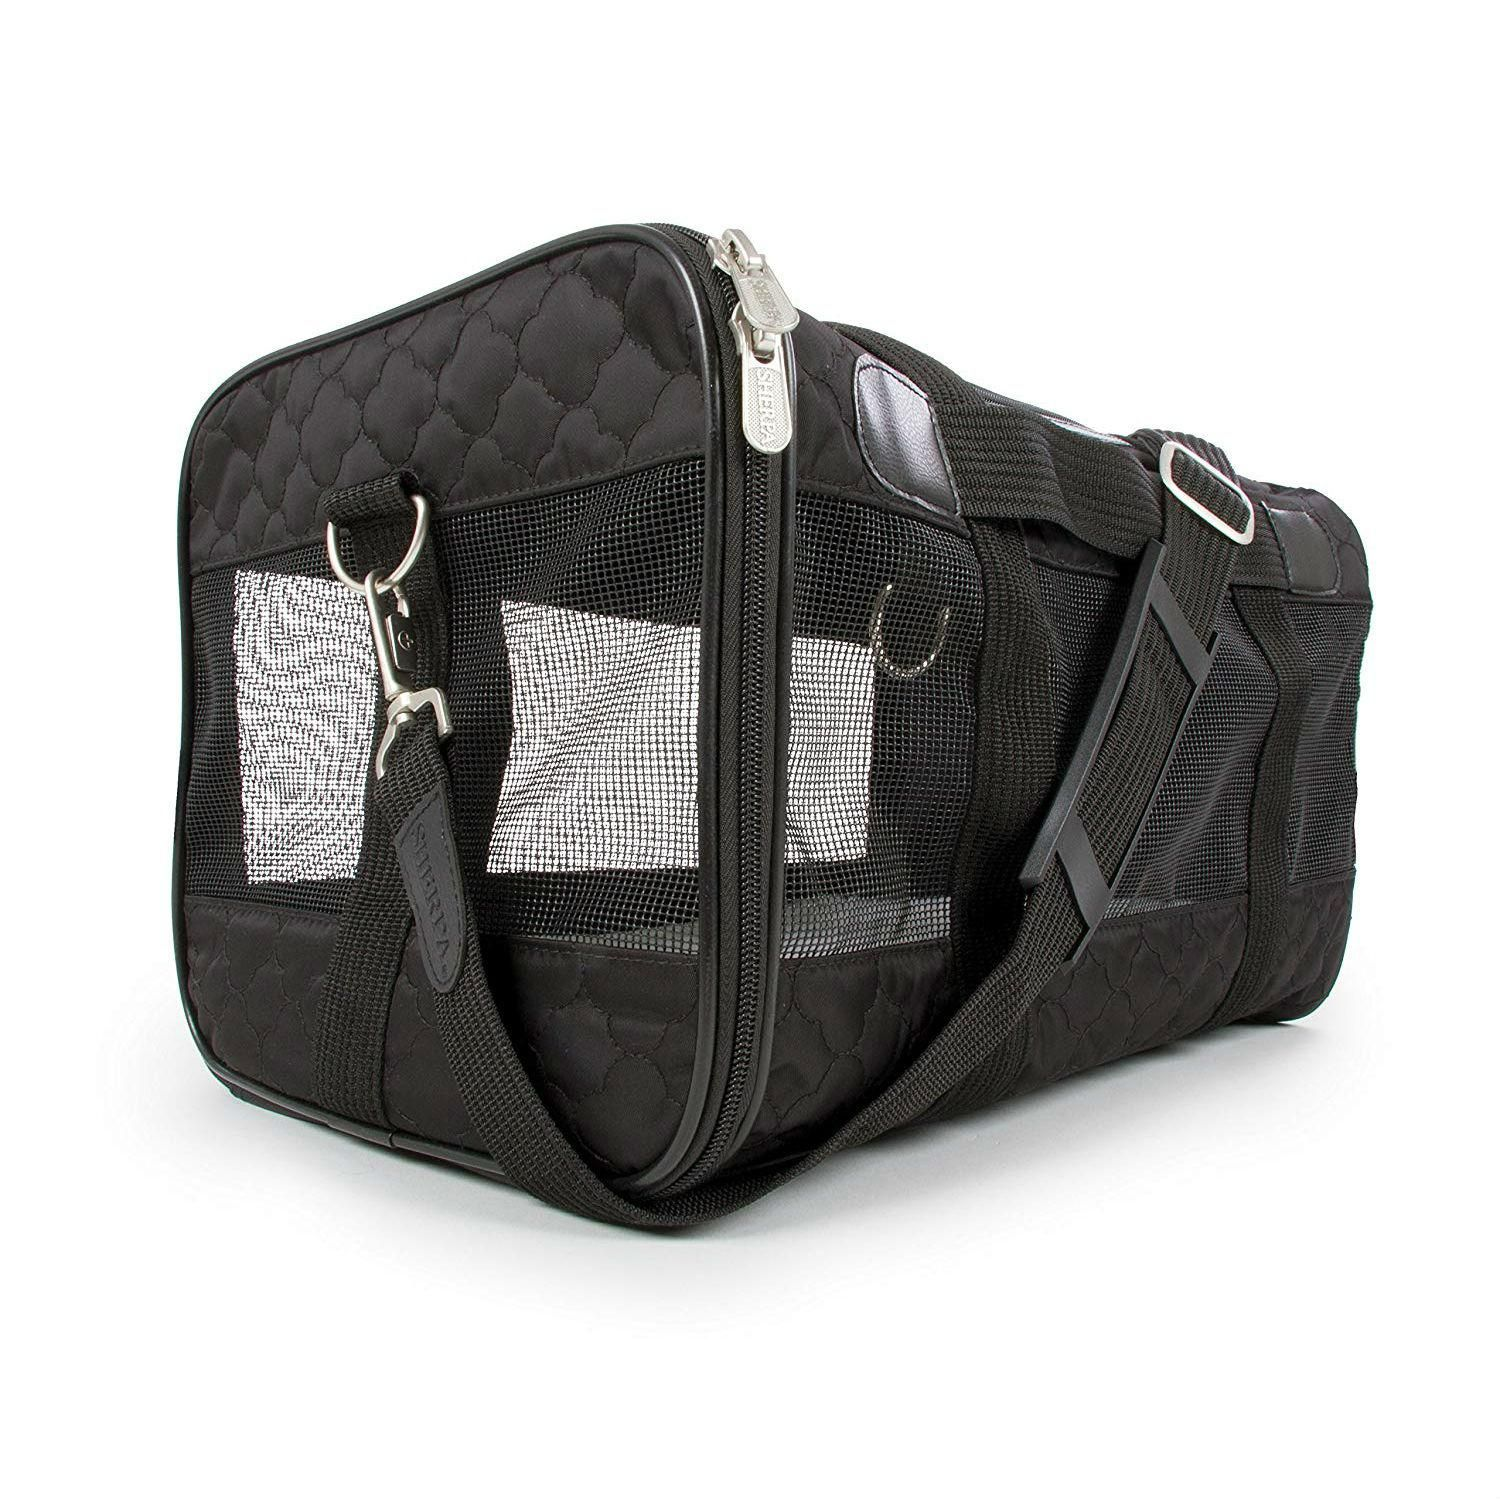 Sherpa Travel Original Deluxe Dog Carrier Black Lattice